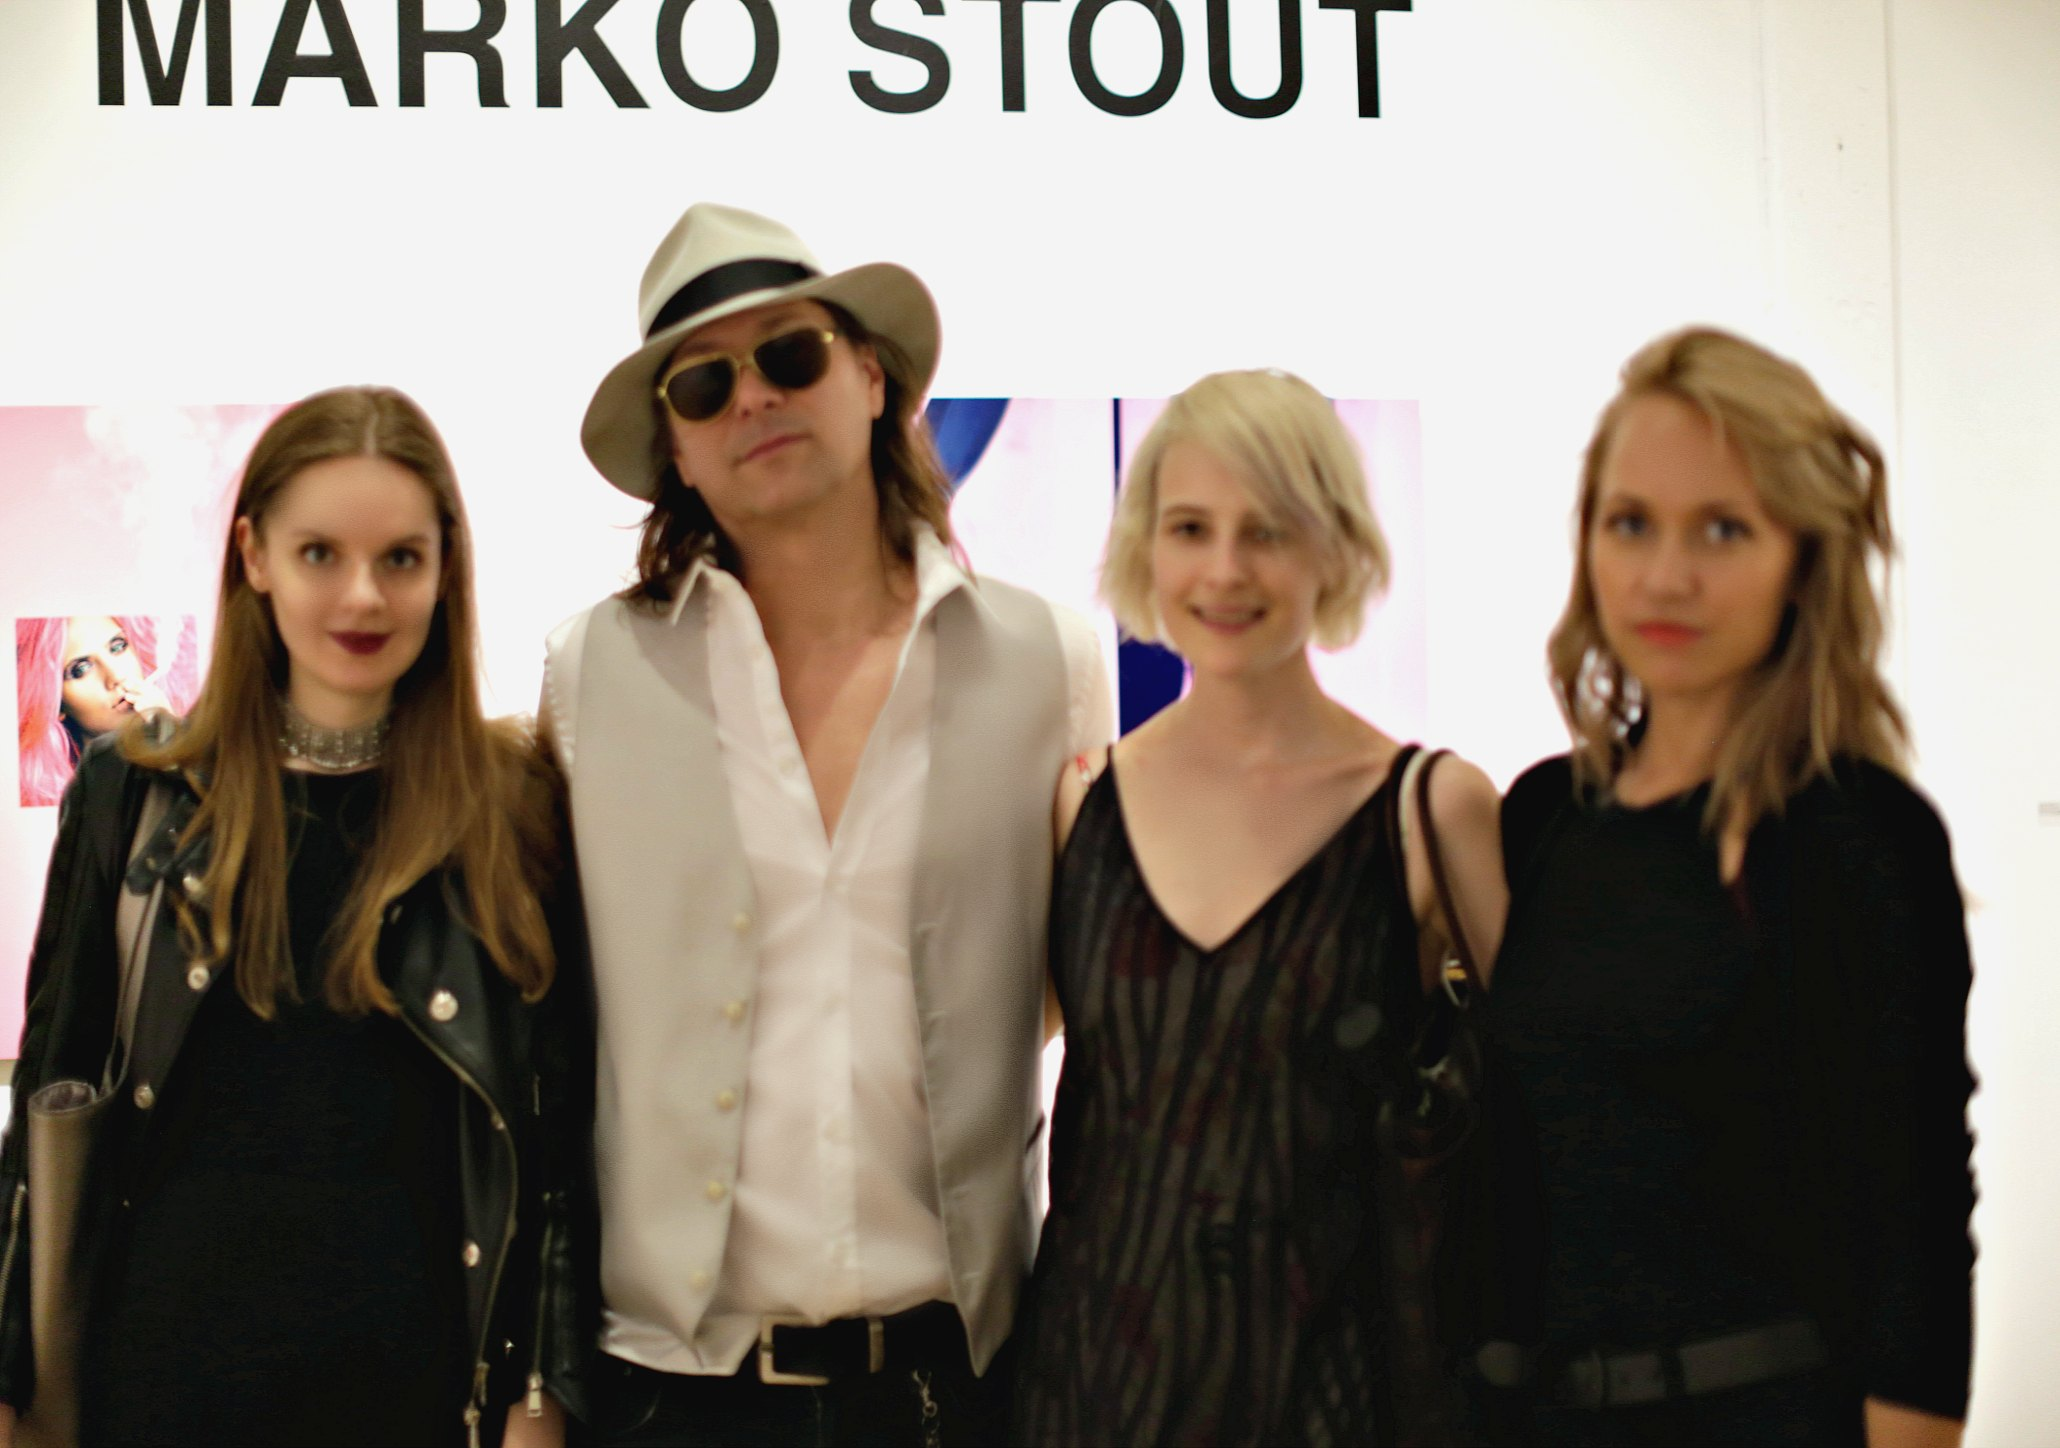 marko stout solo exhibition at sepia eye gallery new york